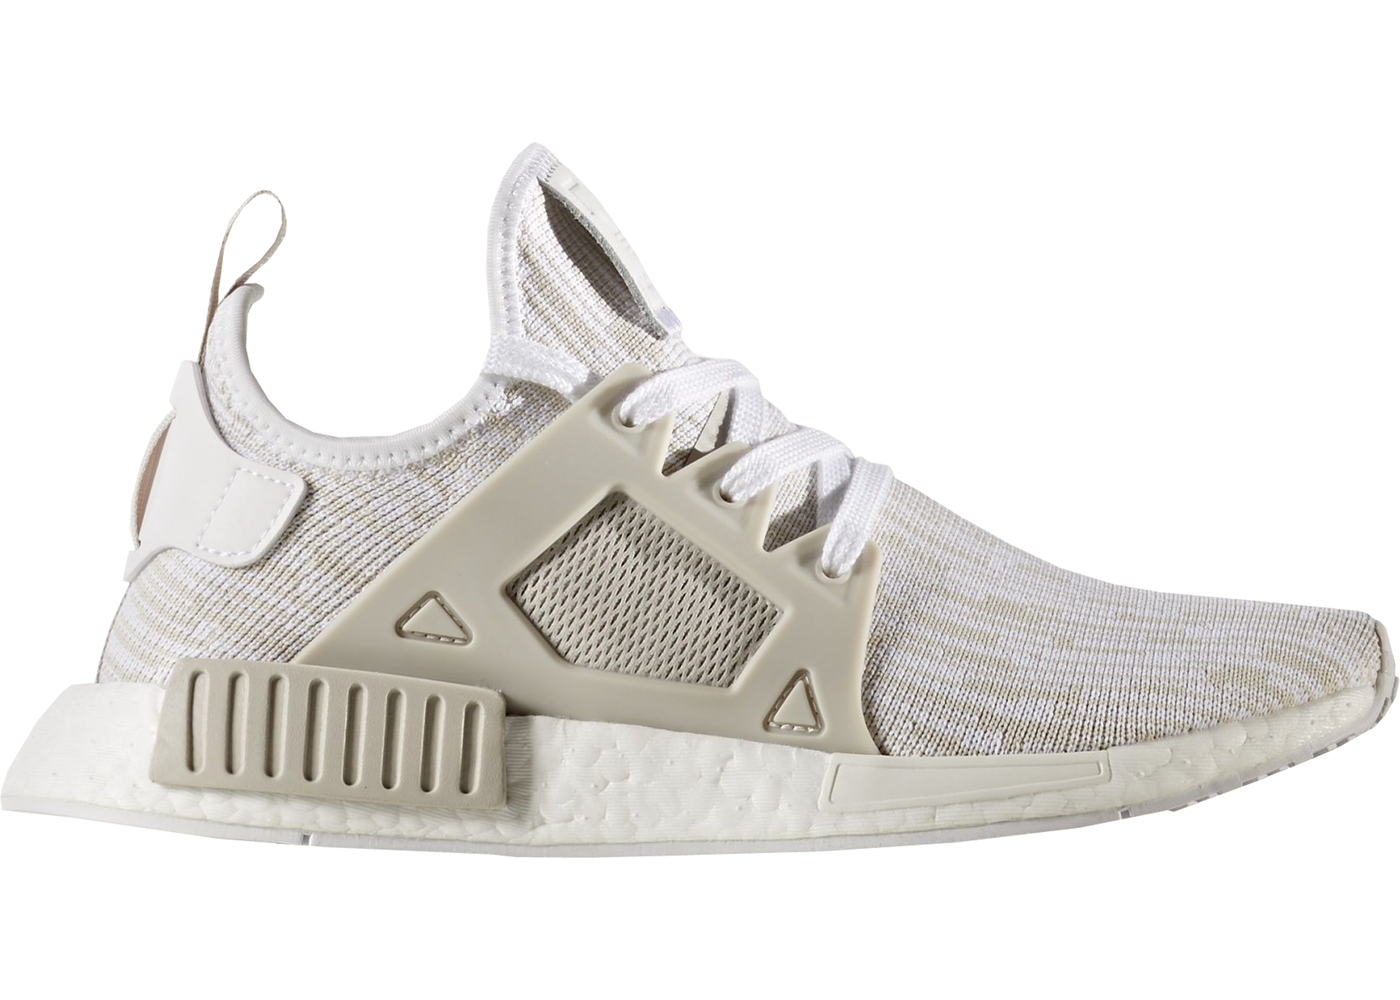 adidas NMD Xr1 Primeknit Vintage W White Grey BB3684 US Women